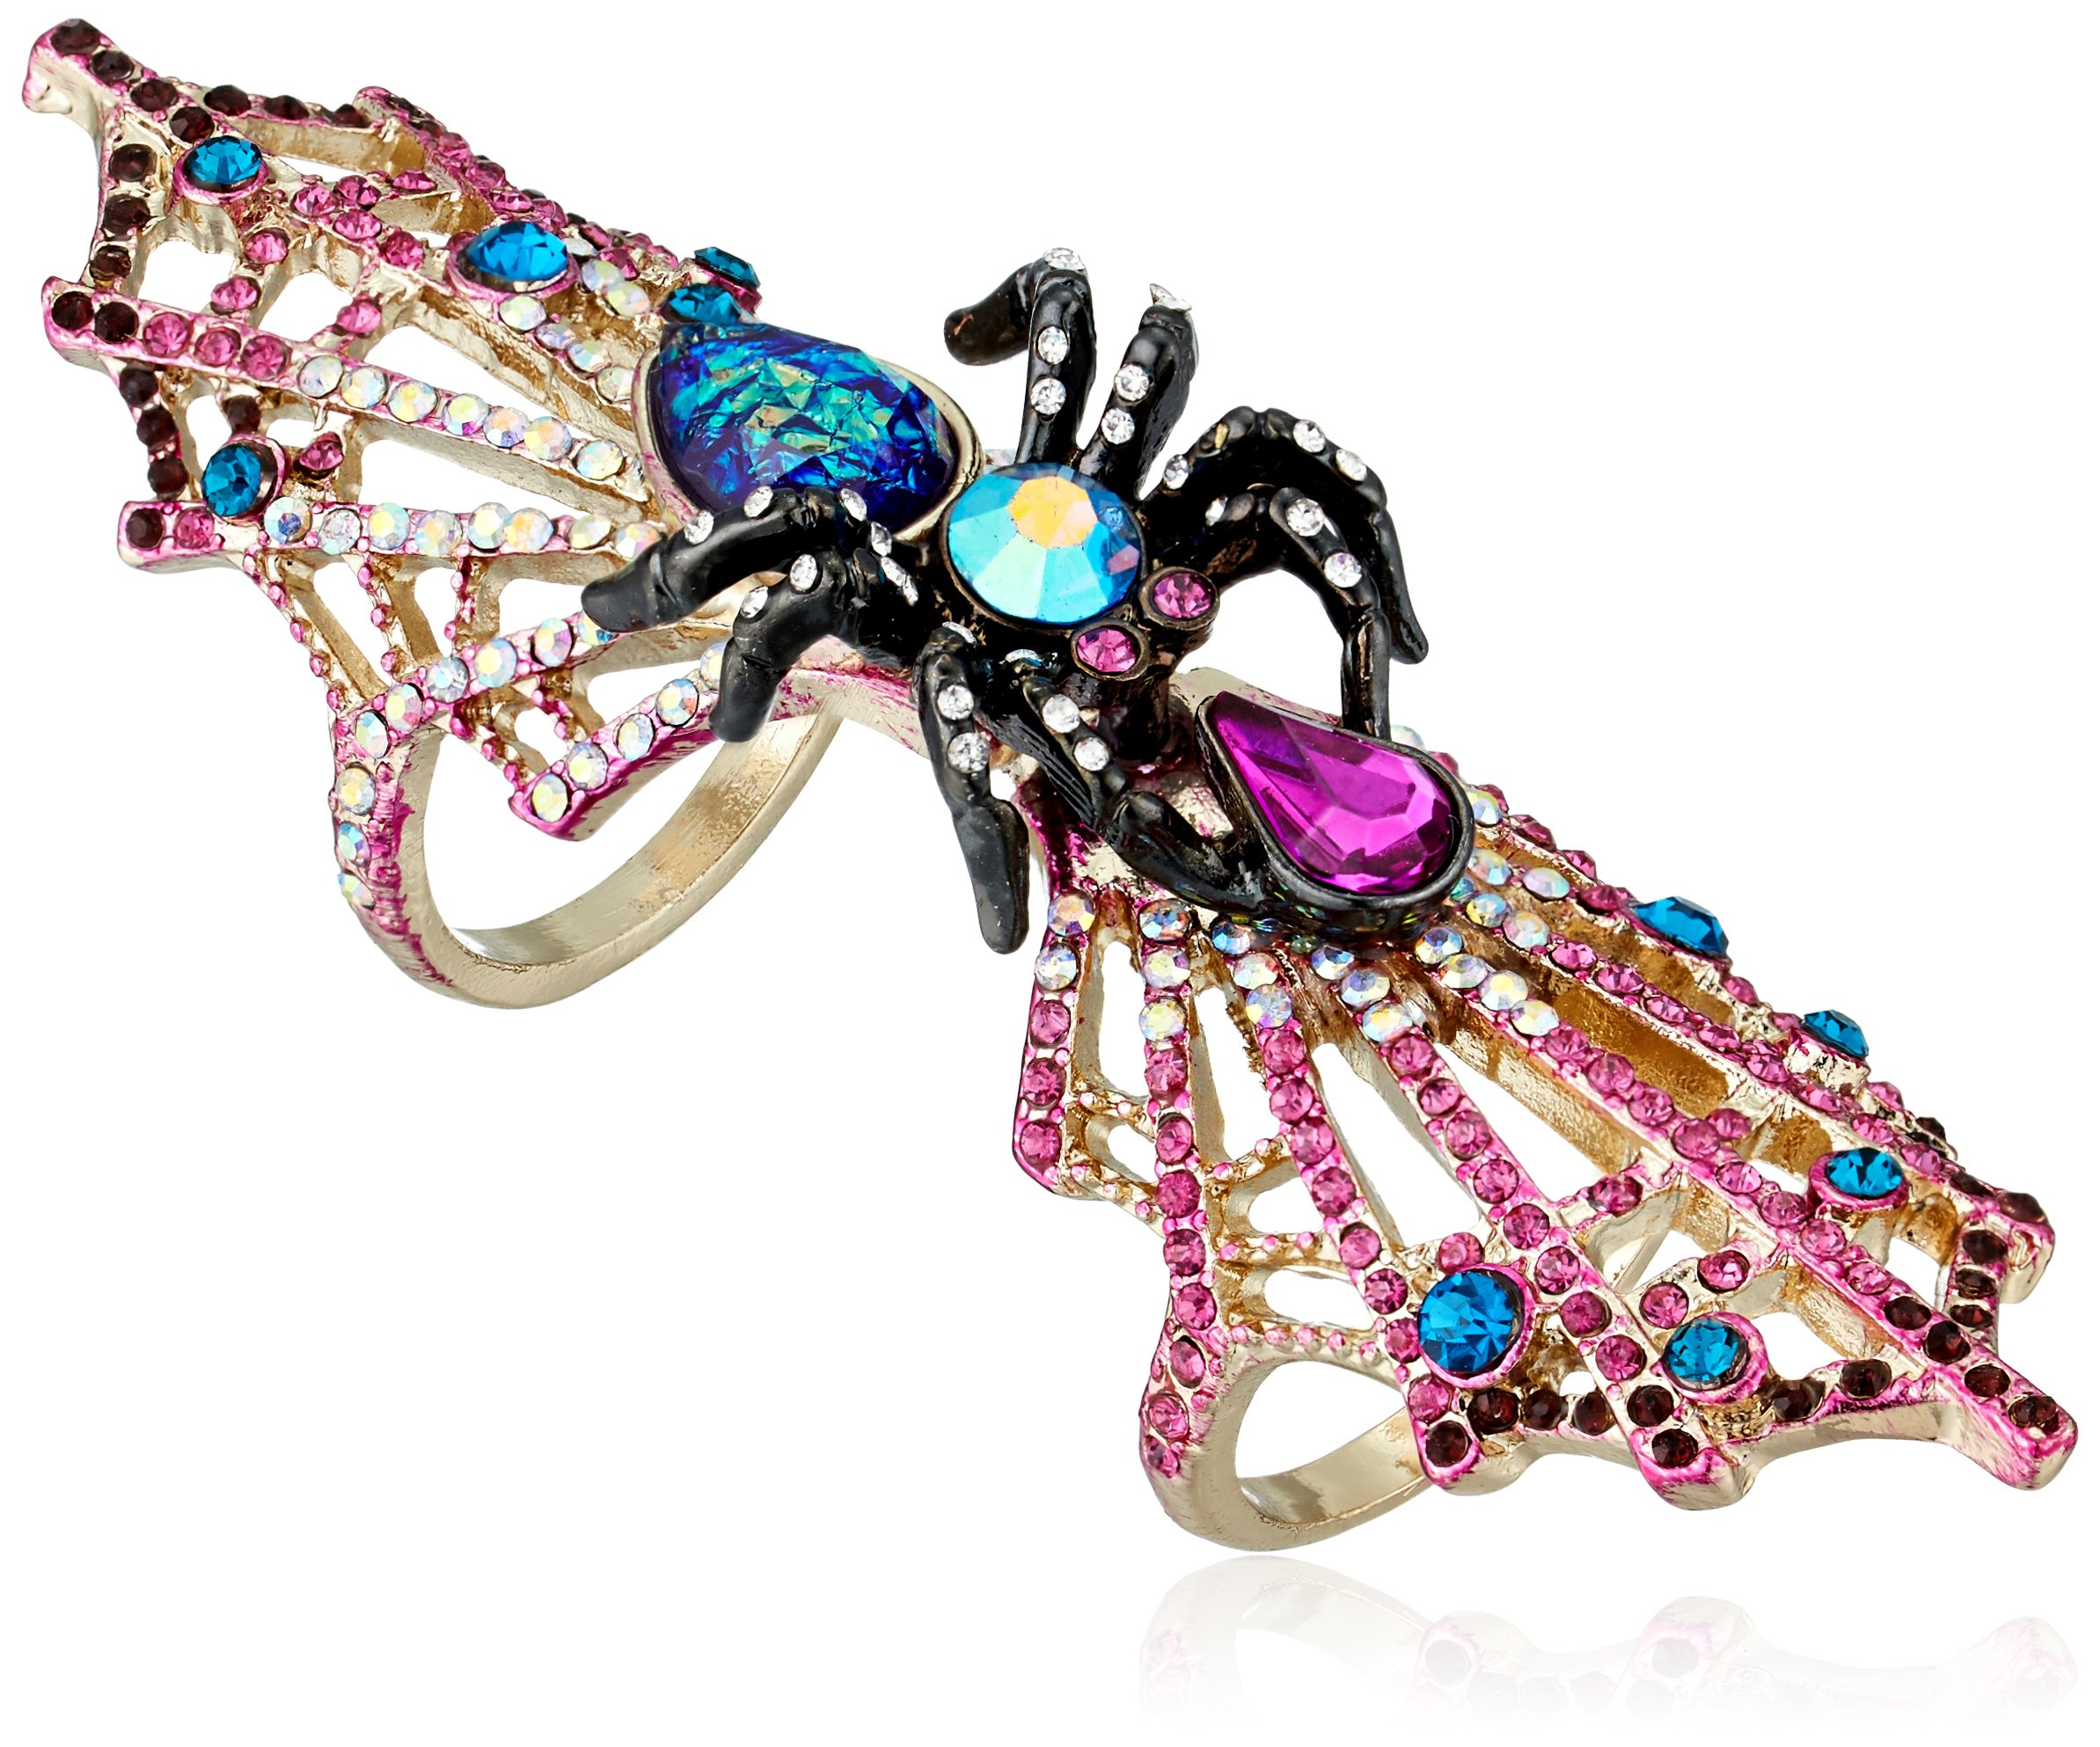 Betsey Johnson Halloween Spider and Spiderweb Double Finger Ring, Size 7.5-8.5